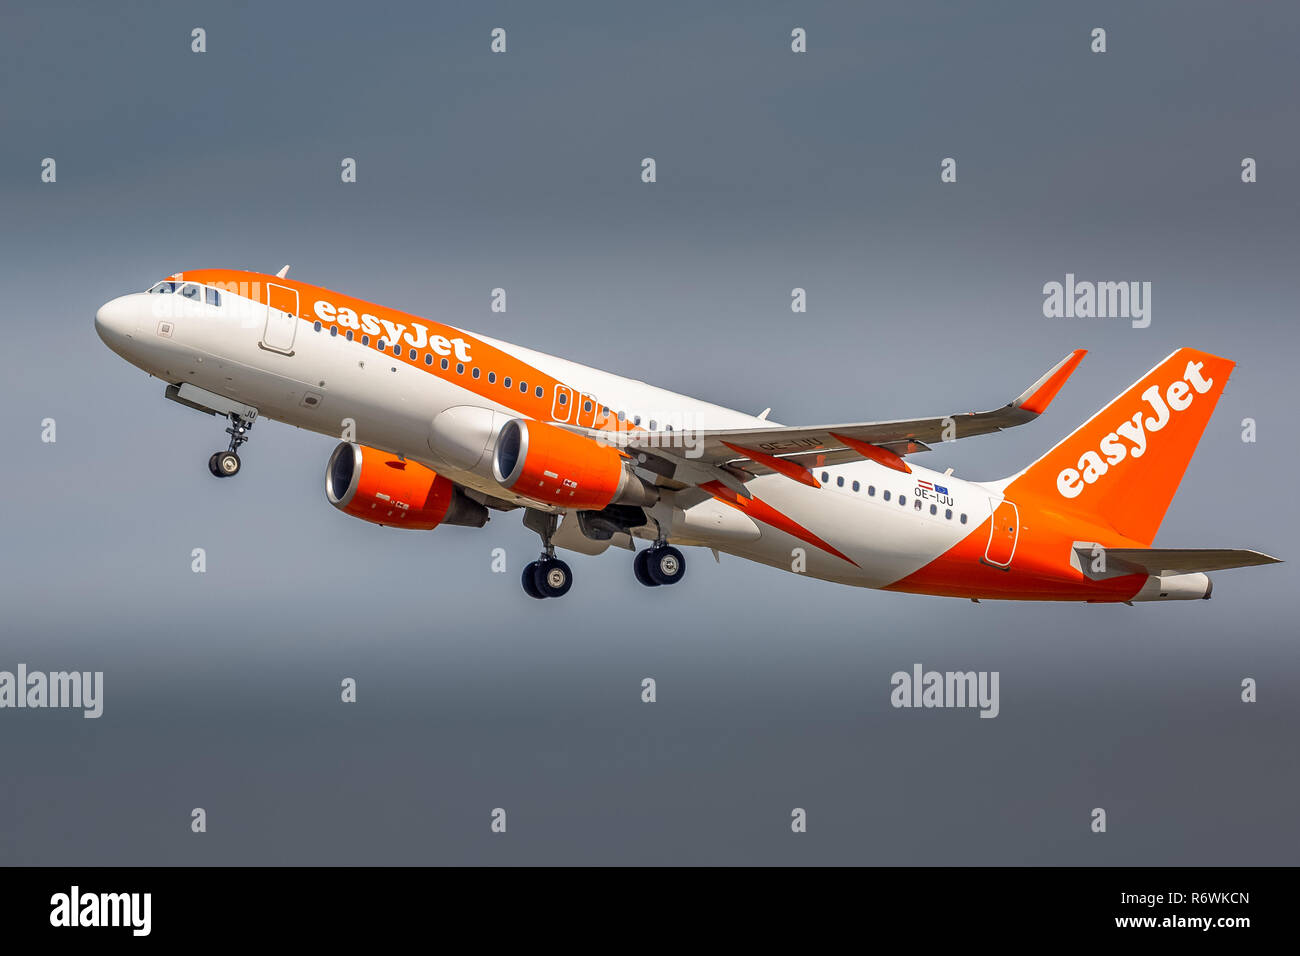 An Easyjet Airbus A320, registration OE-IJU, taking off from manchester Airport in England. - Stock Image